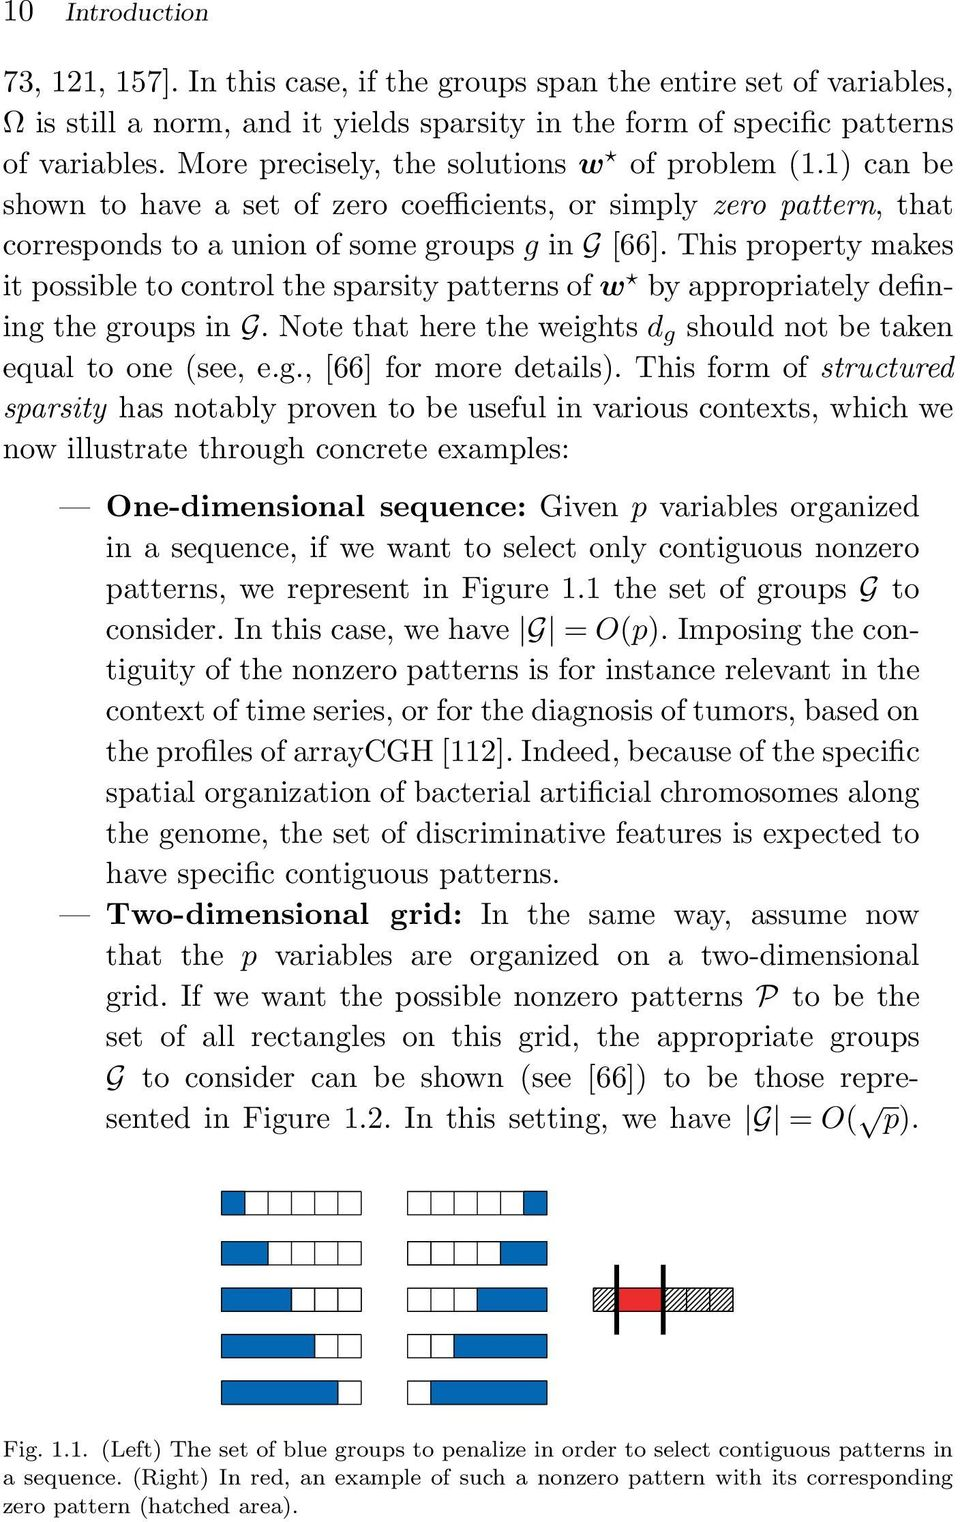 This property makes it possible to control the sparsity patterns of w by appropriately defining the groups in G. Note that here the weights d g should not be taken equal to one (see, e.g., [66] for more details).